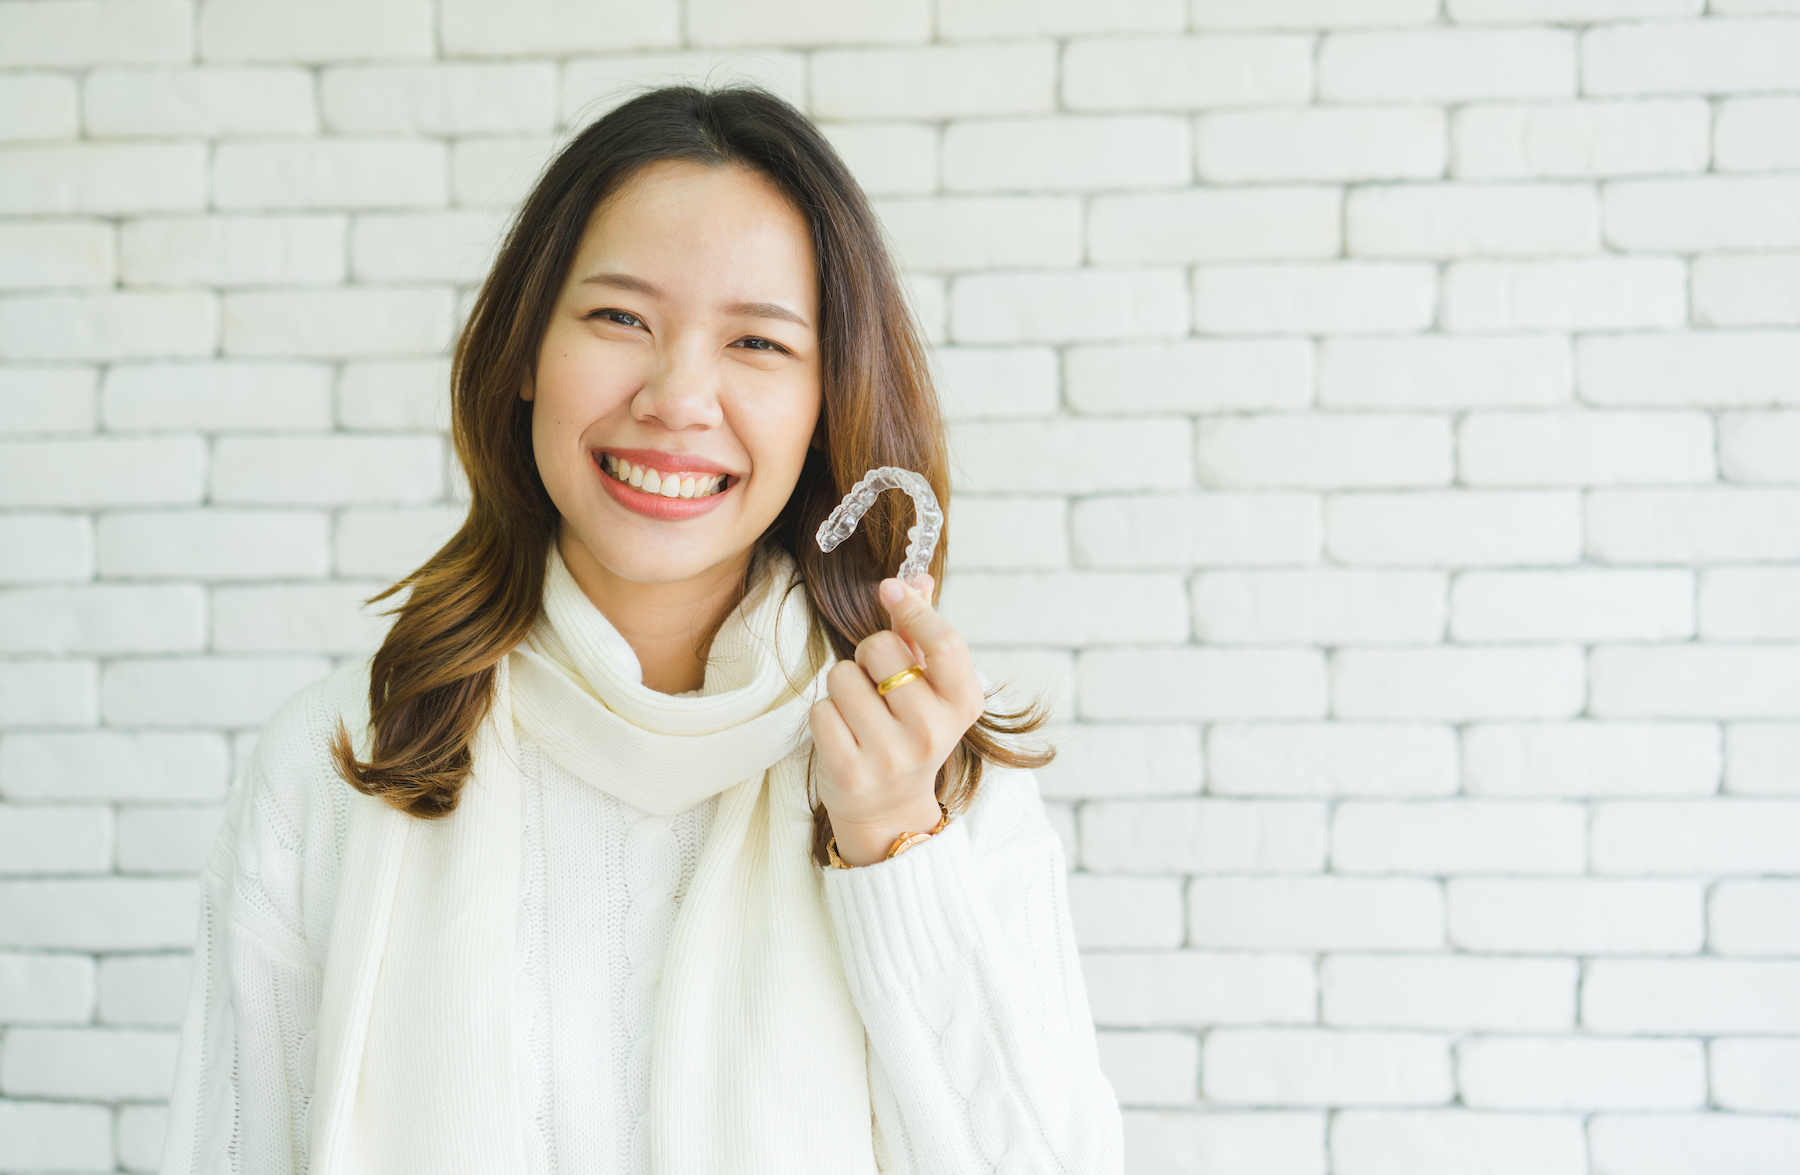 All Your Questions About Invisalign – Answered!